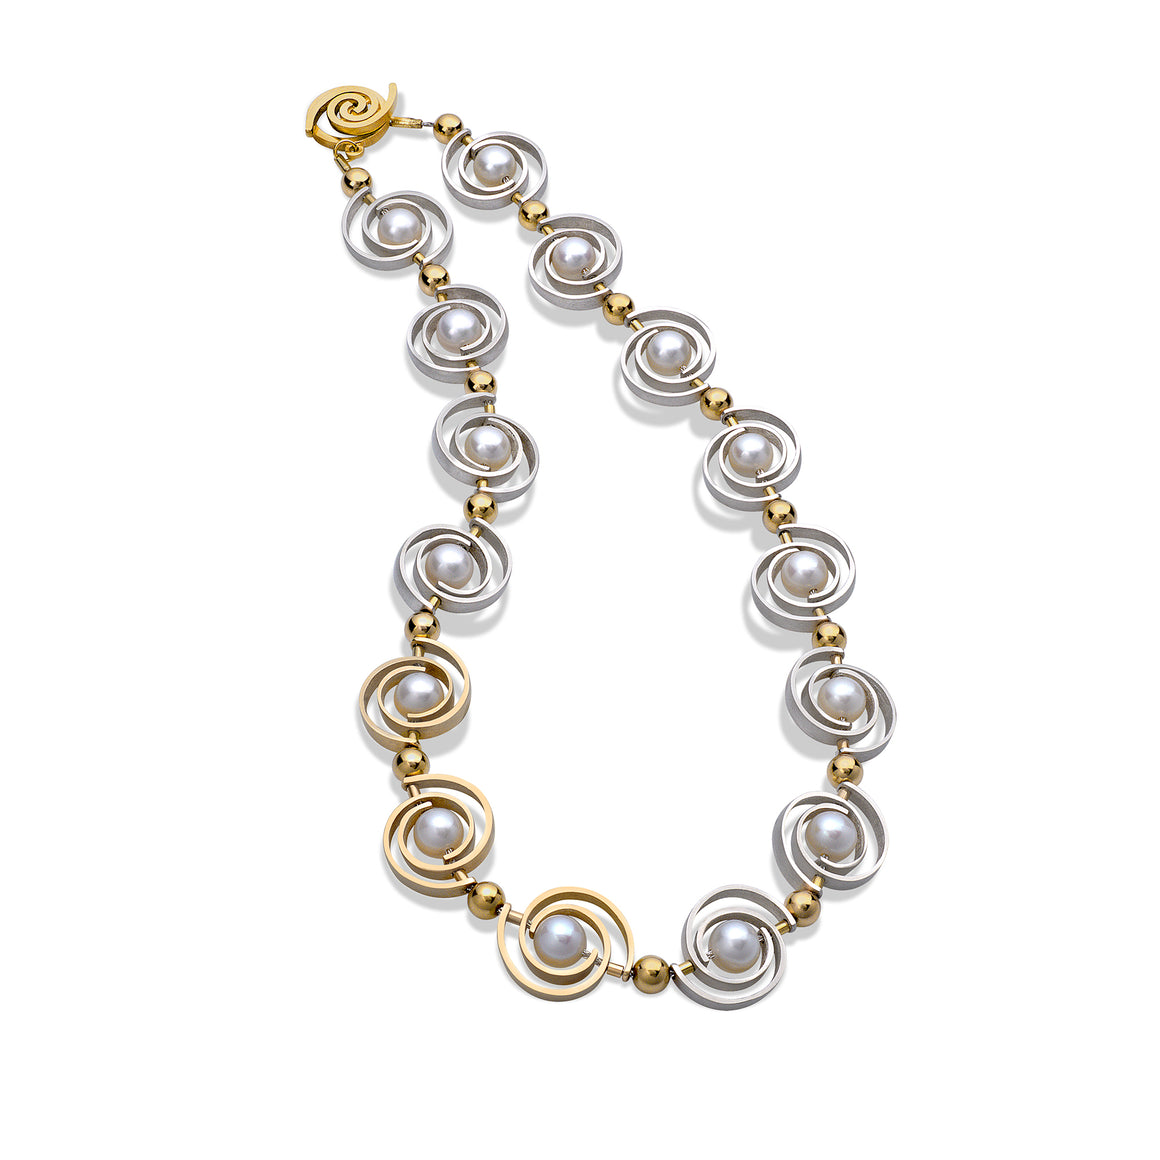 Martha Seely Articulating Orbit Necklace